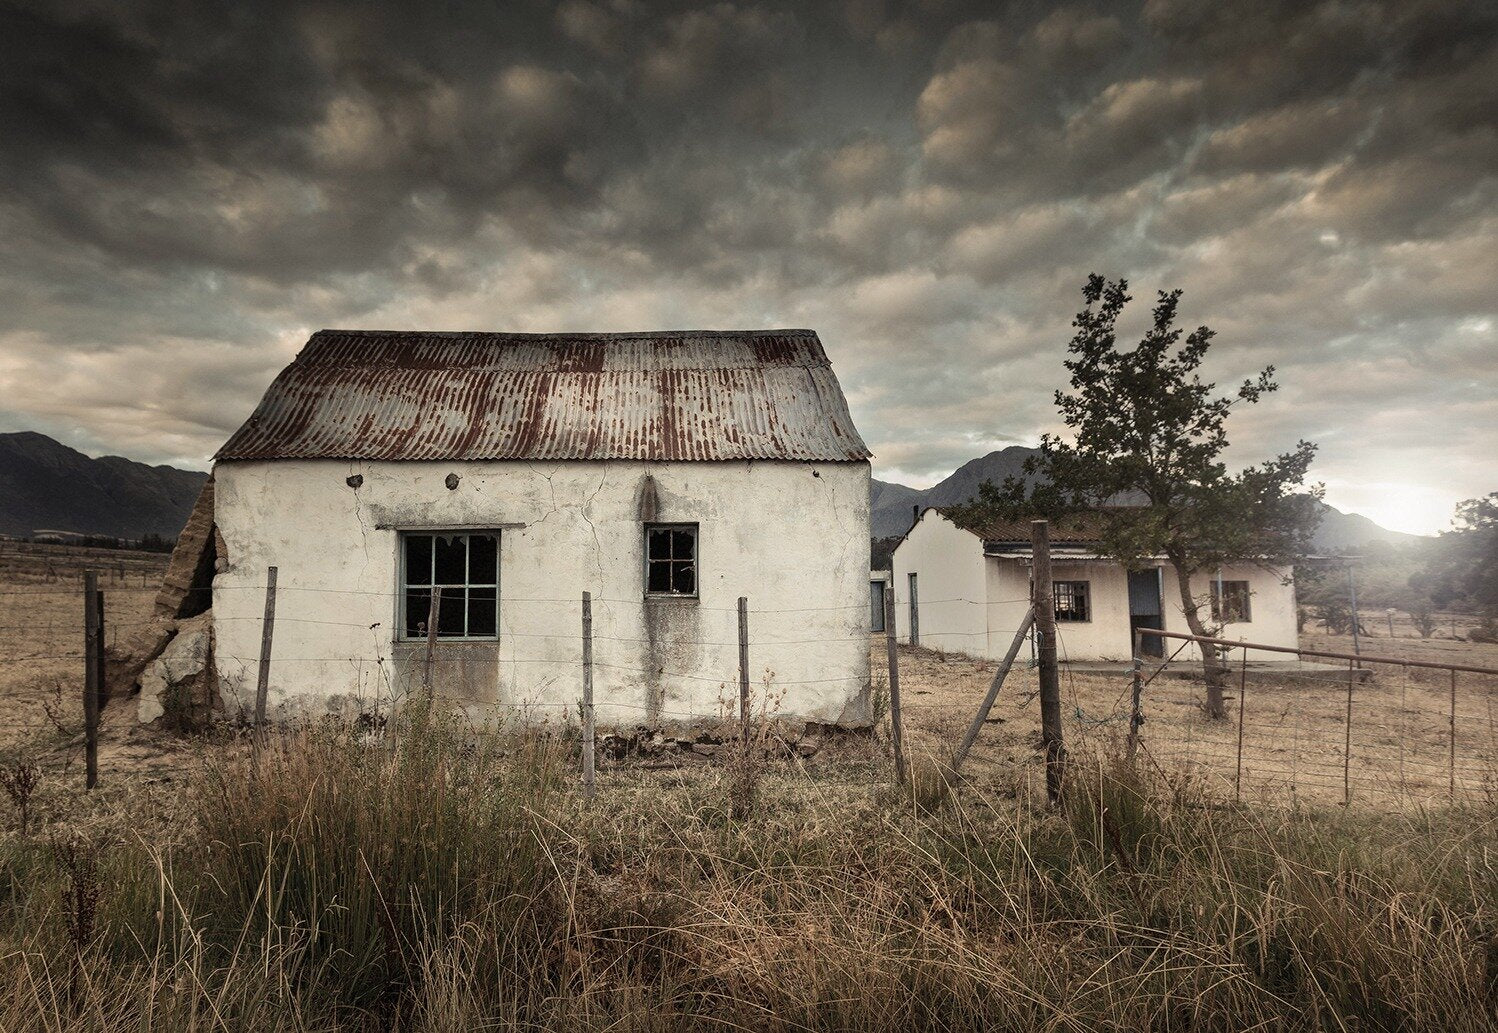 An old farmhouse photographed by Martin Osner for his Abandoned collection